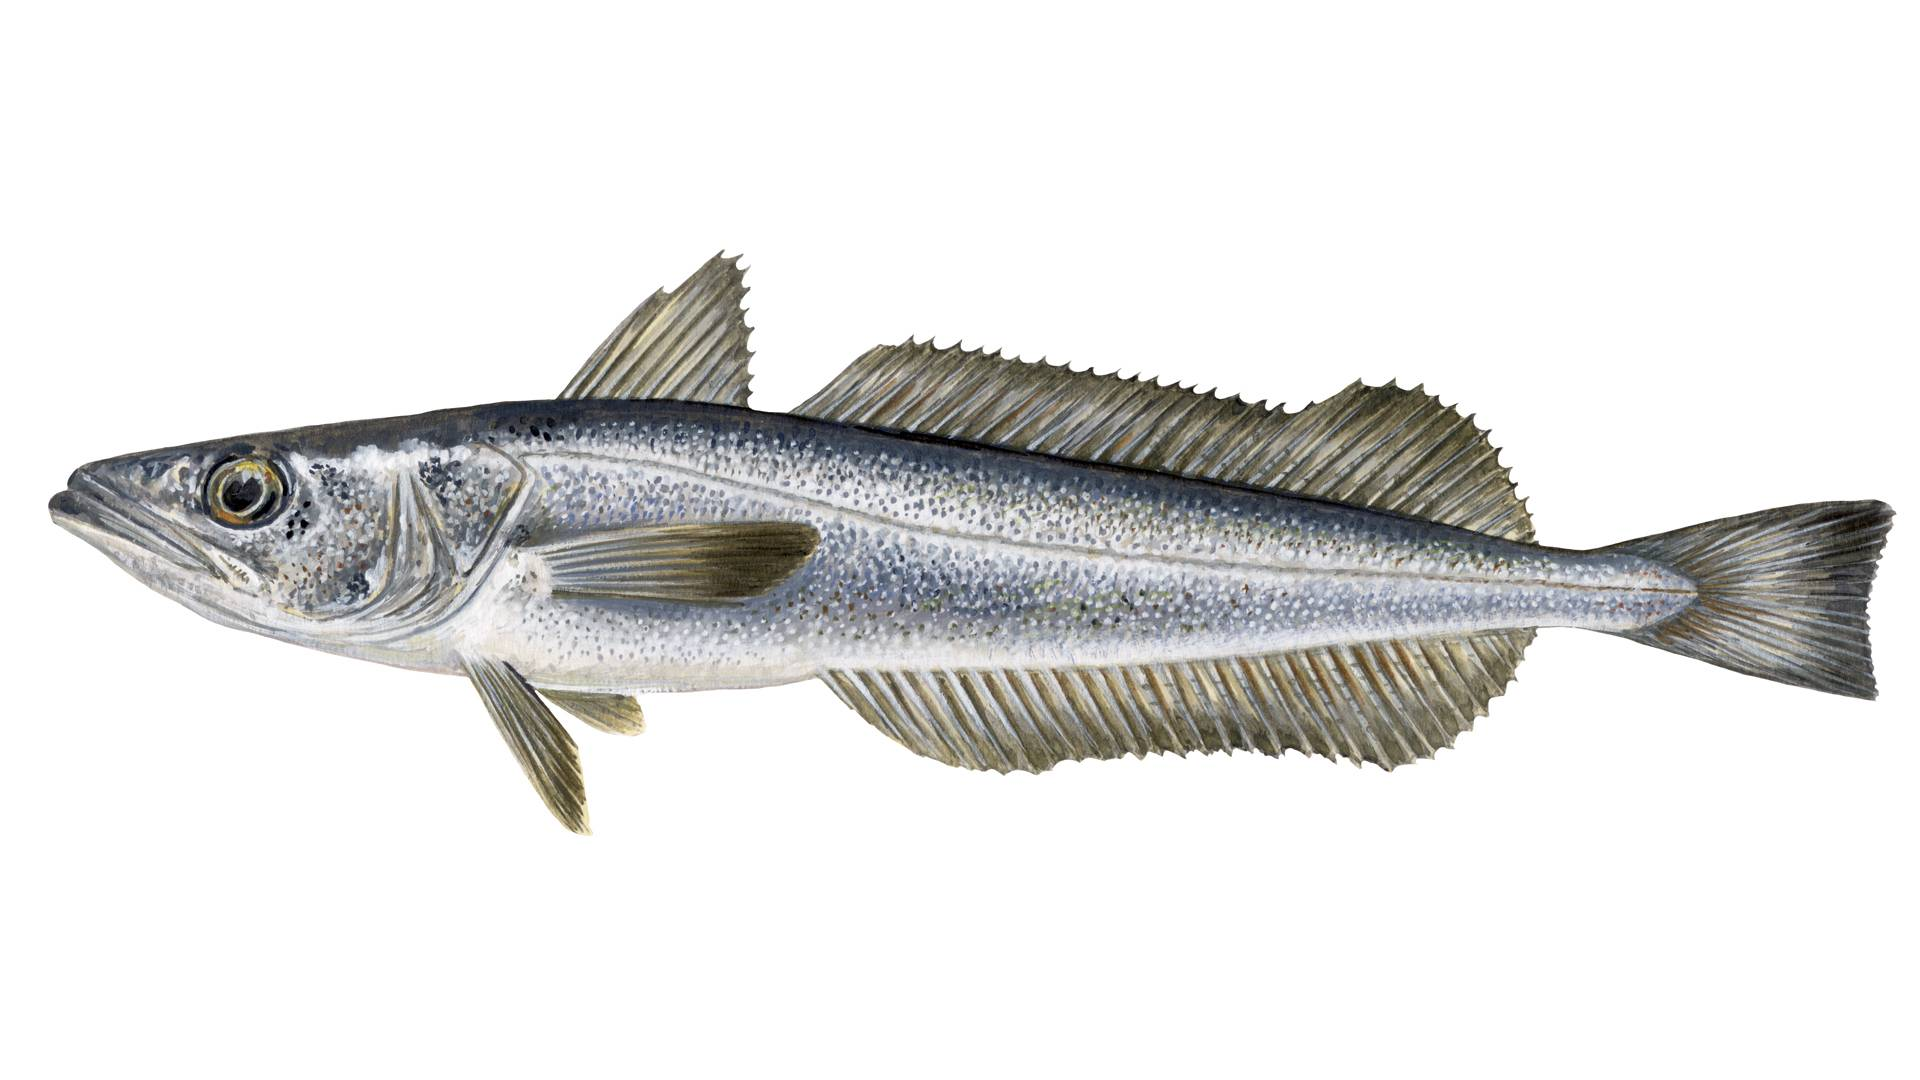 Illustration of Merluccius capensis - Shallow Water Cape Hake